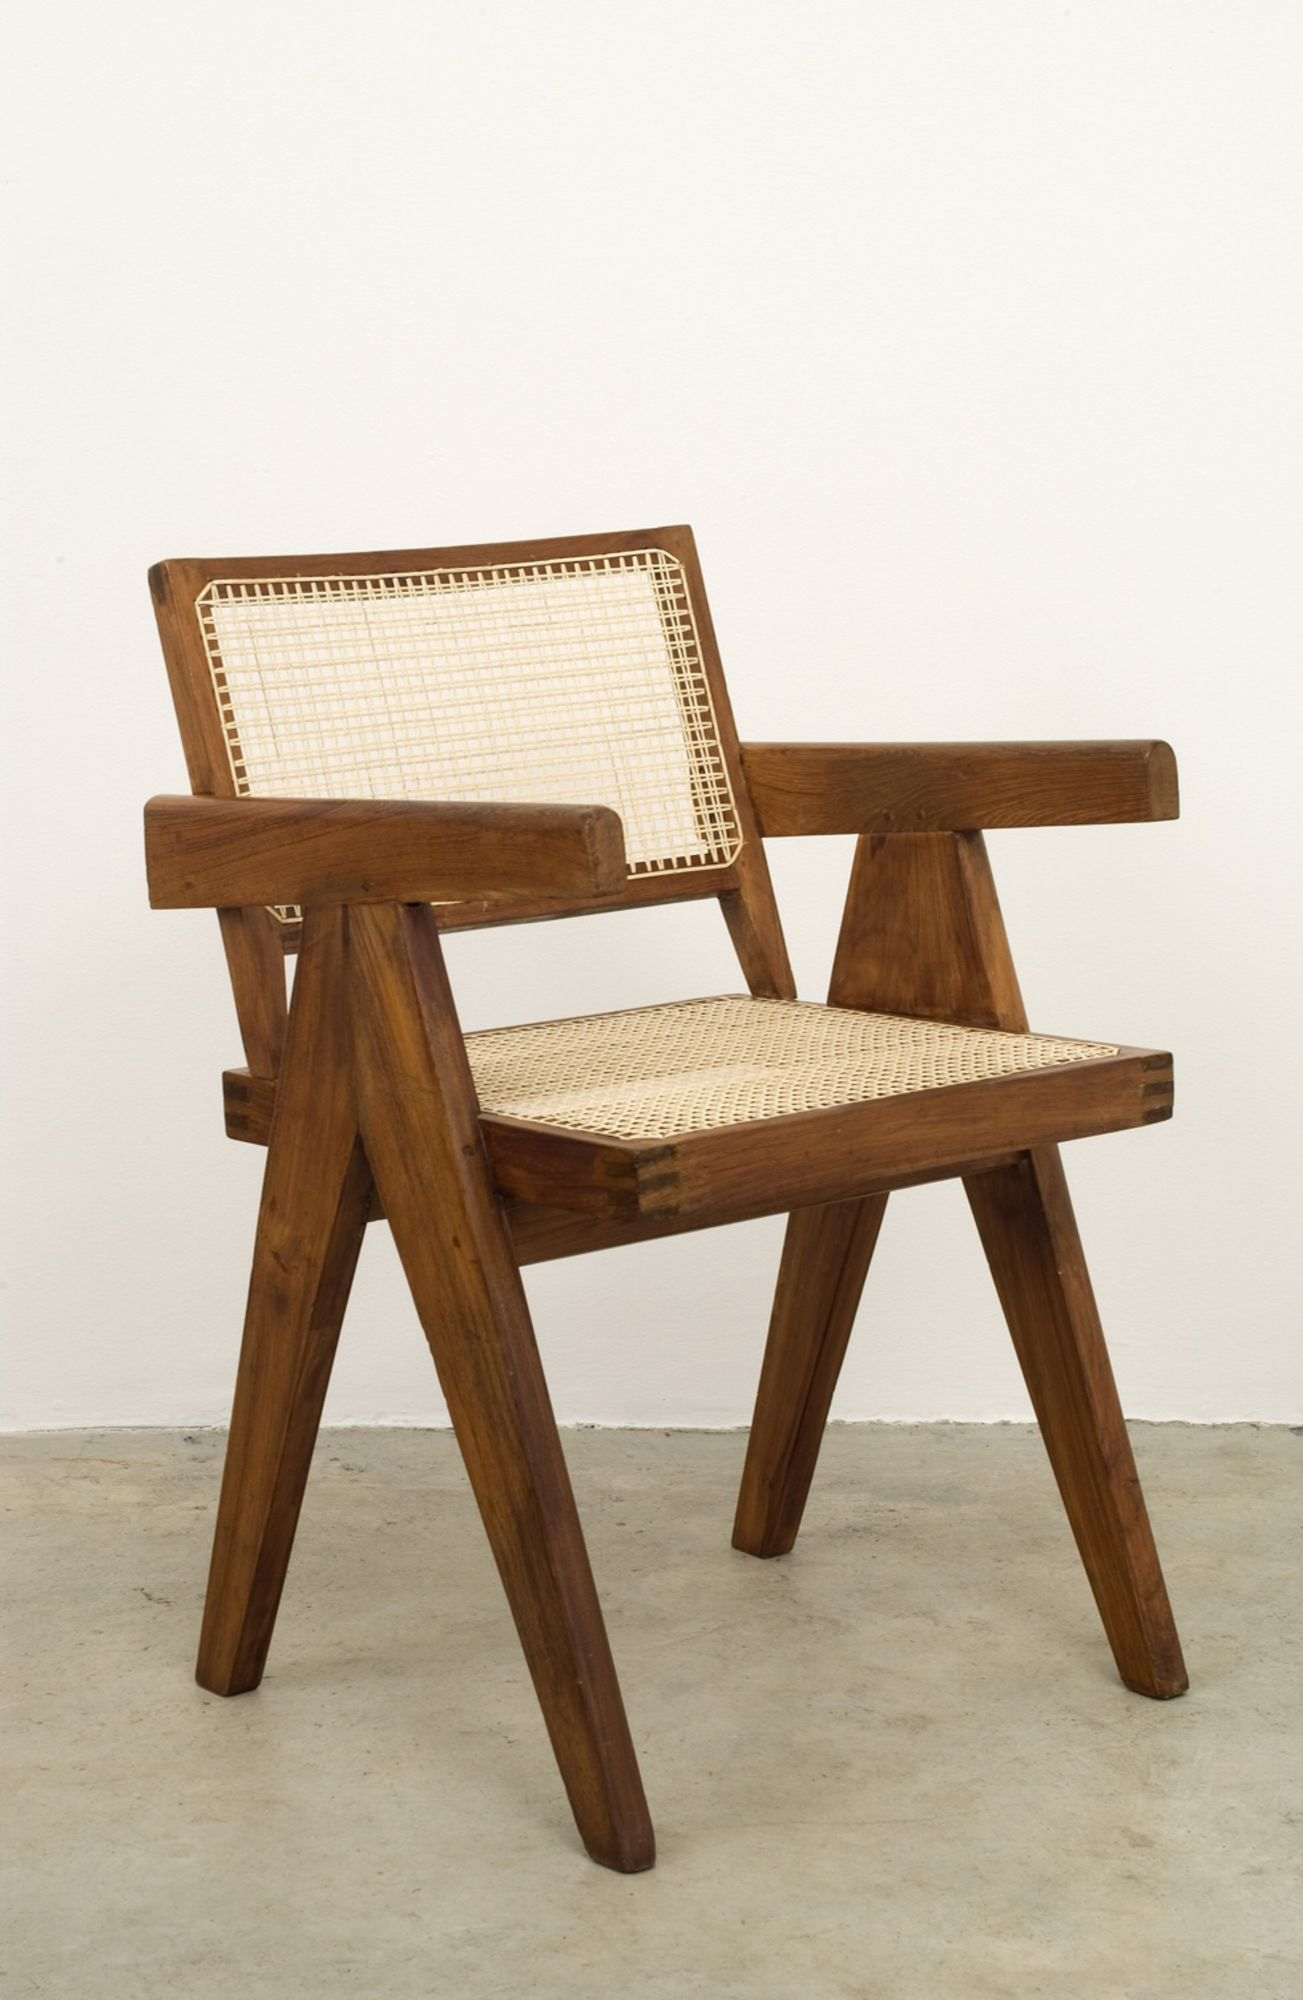 Lot 1 Pierre Jeanneret group, Office Chair – Provenance: Punjab University, Chandigarh, India Estimate: 8,000 - 12,000 €